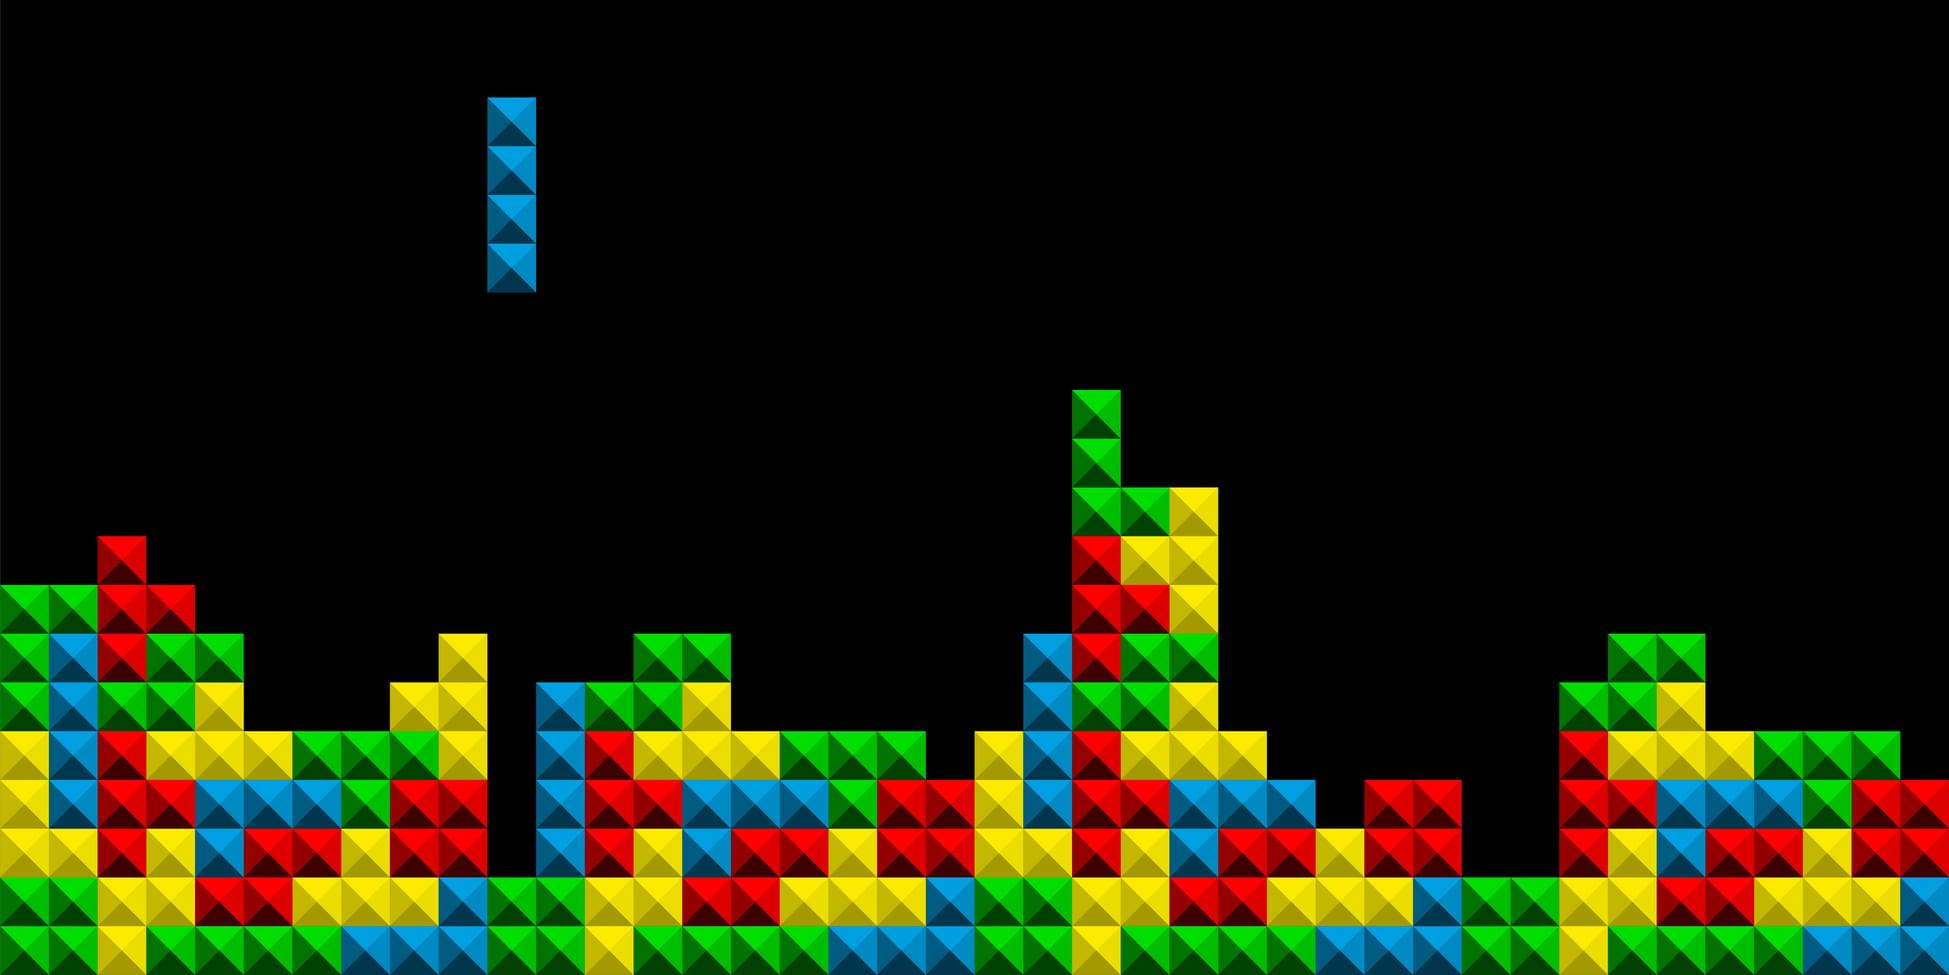 Tetris block falling down to fit in with blocks already in place